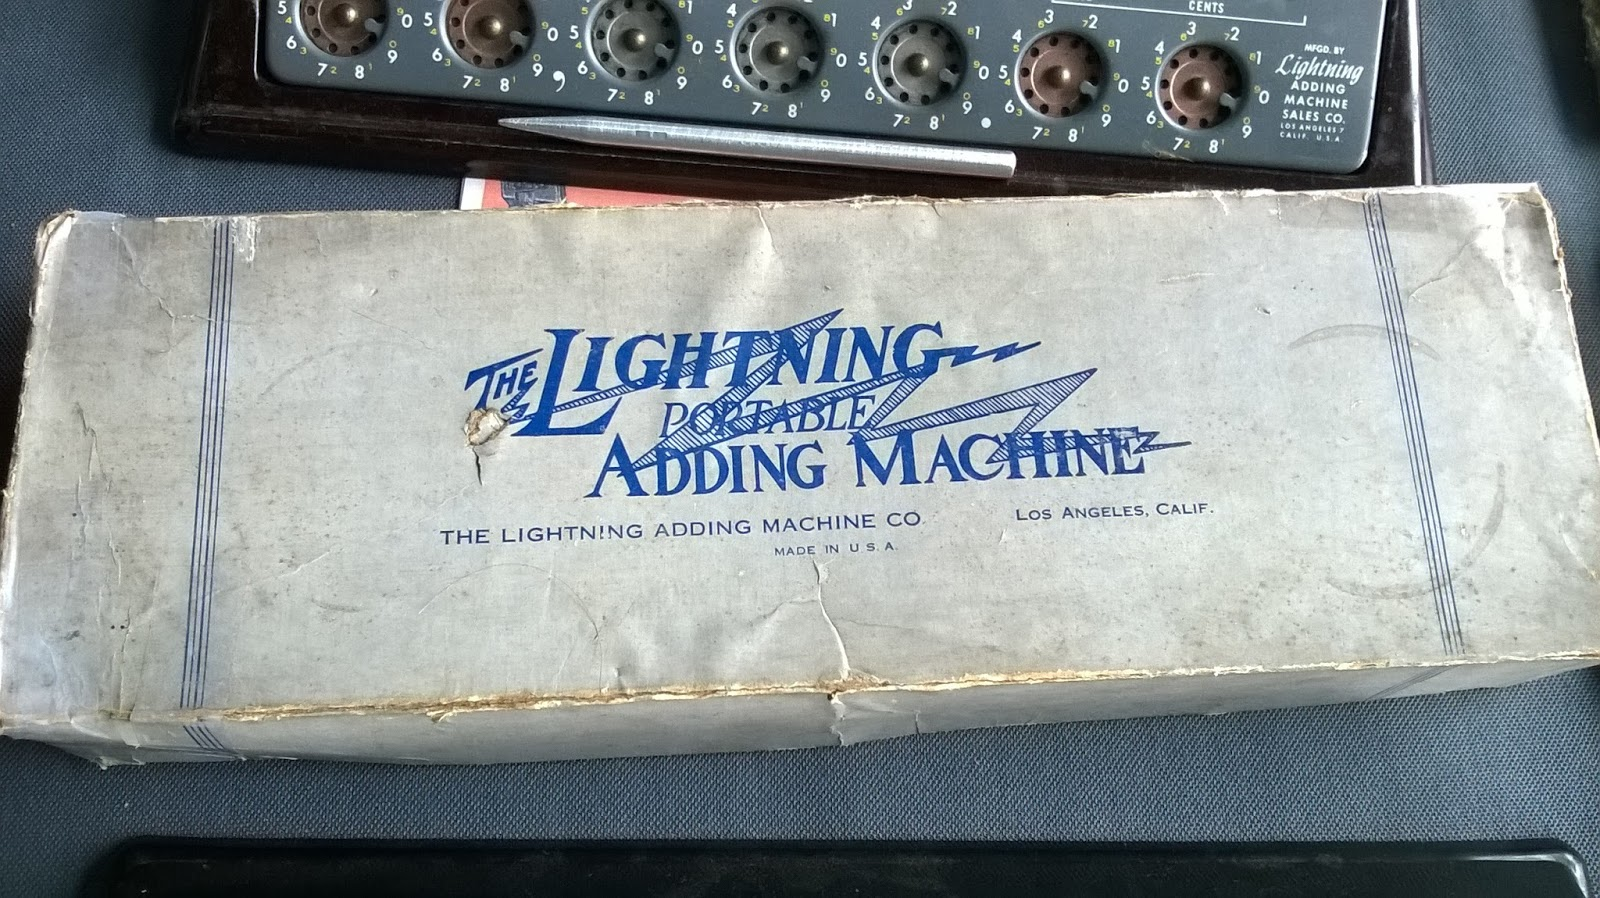 Original Lightning Adding Machine Box